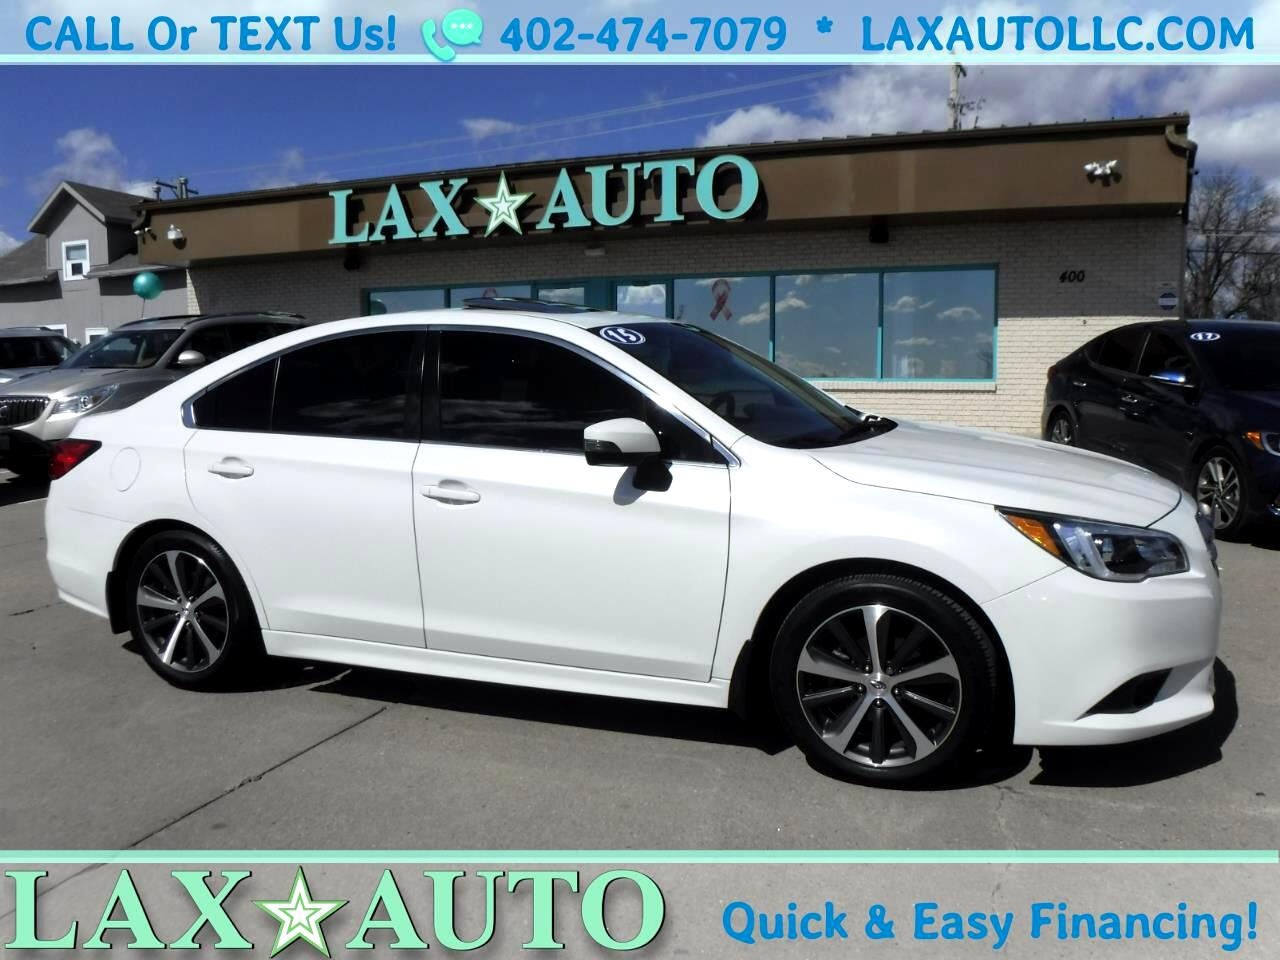 2015 Subaru Legacy 2.5i Limited * 24k Miles * Navi! Back-up Cam!